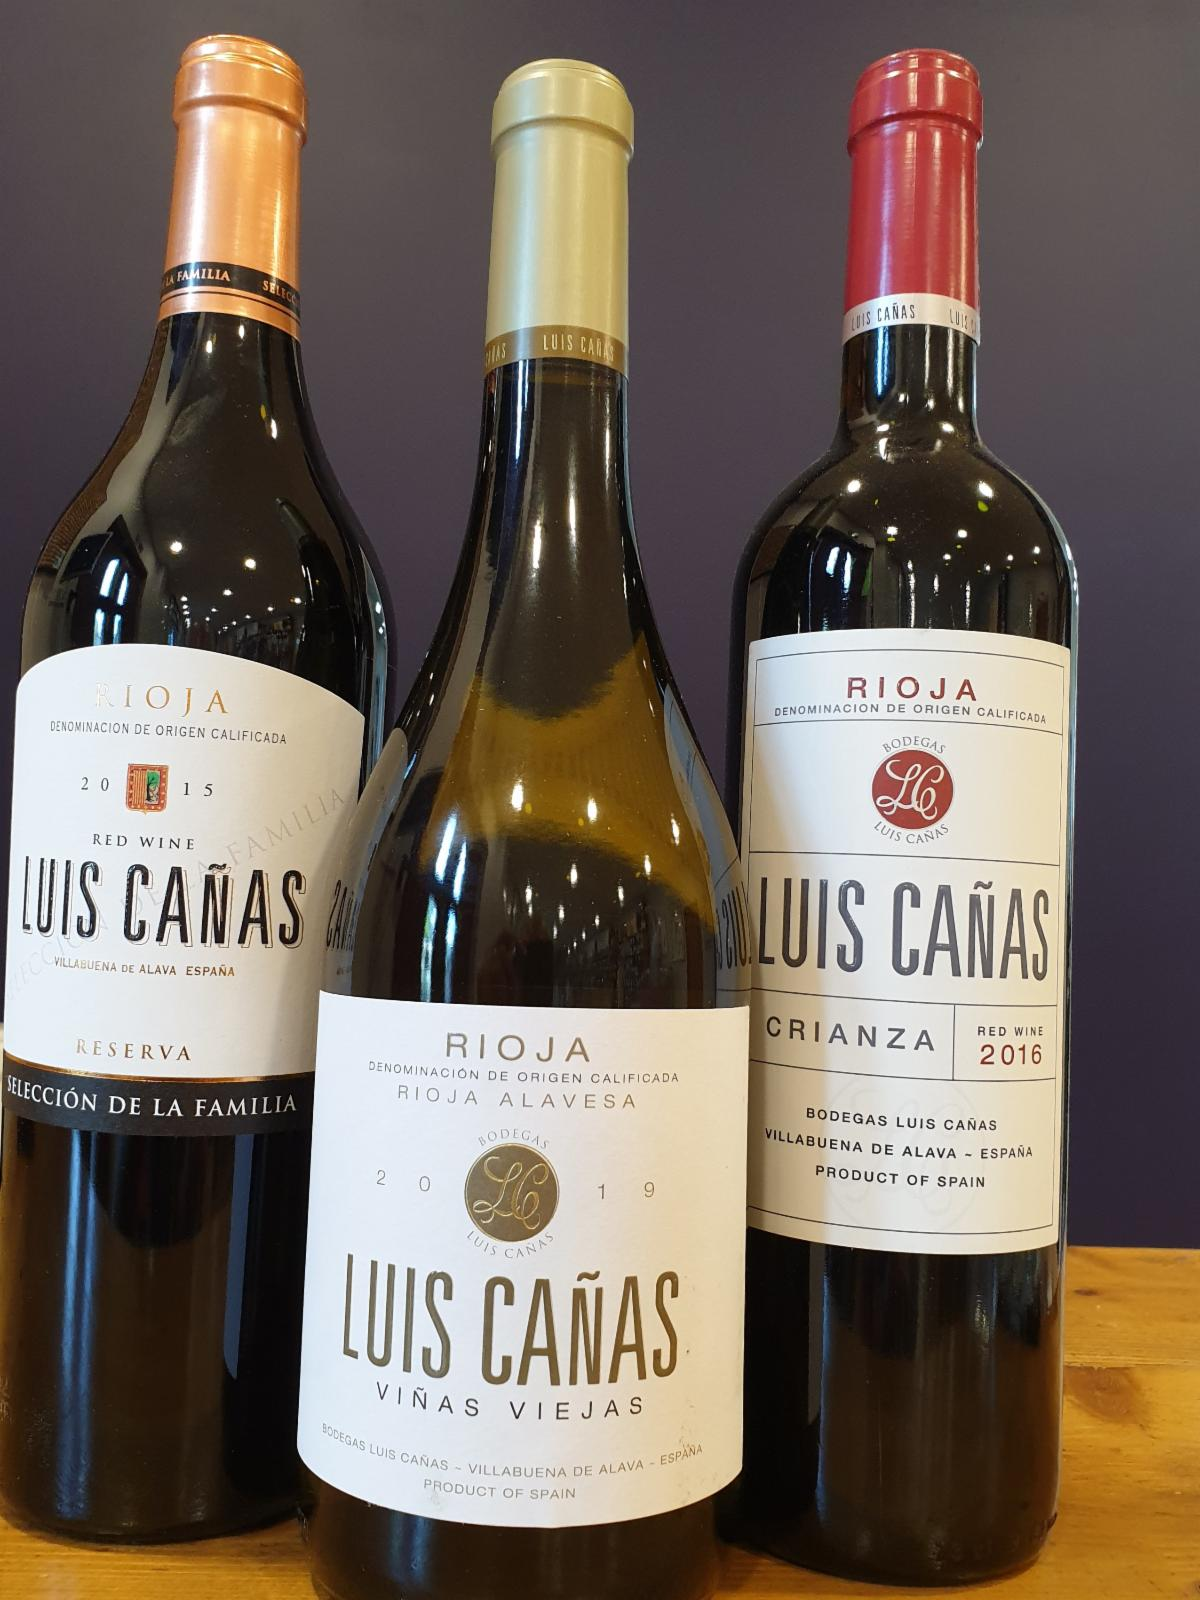 Luis Canas wines